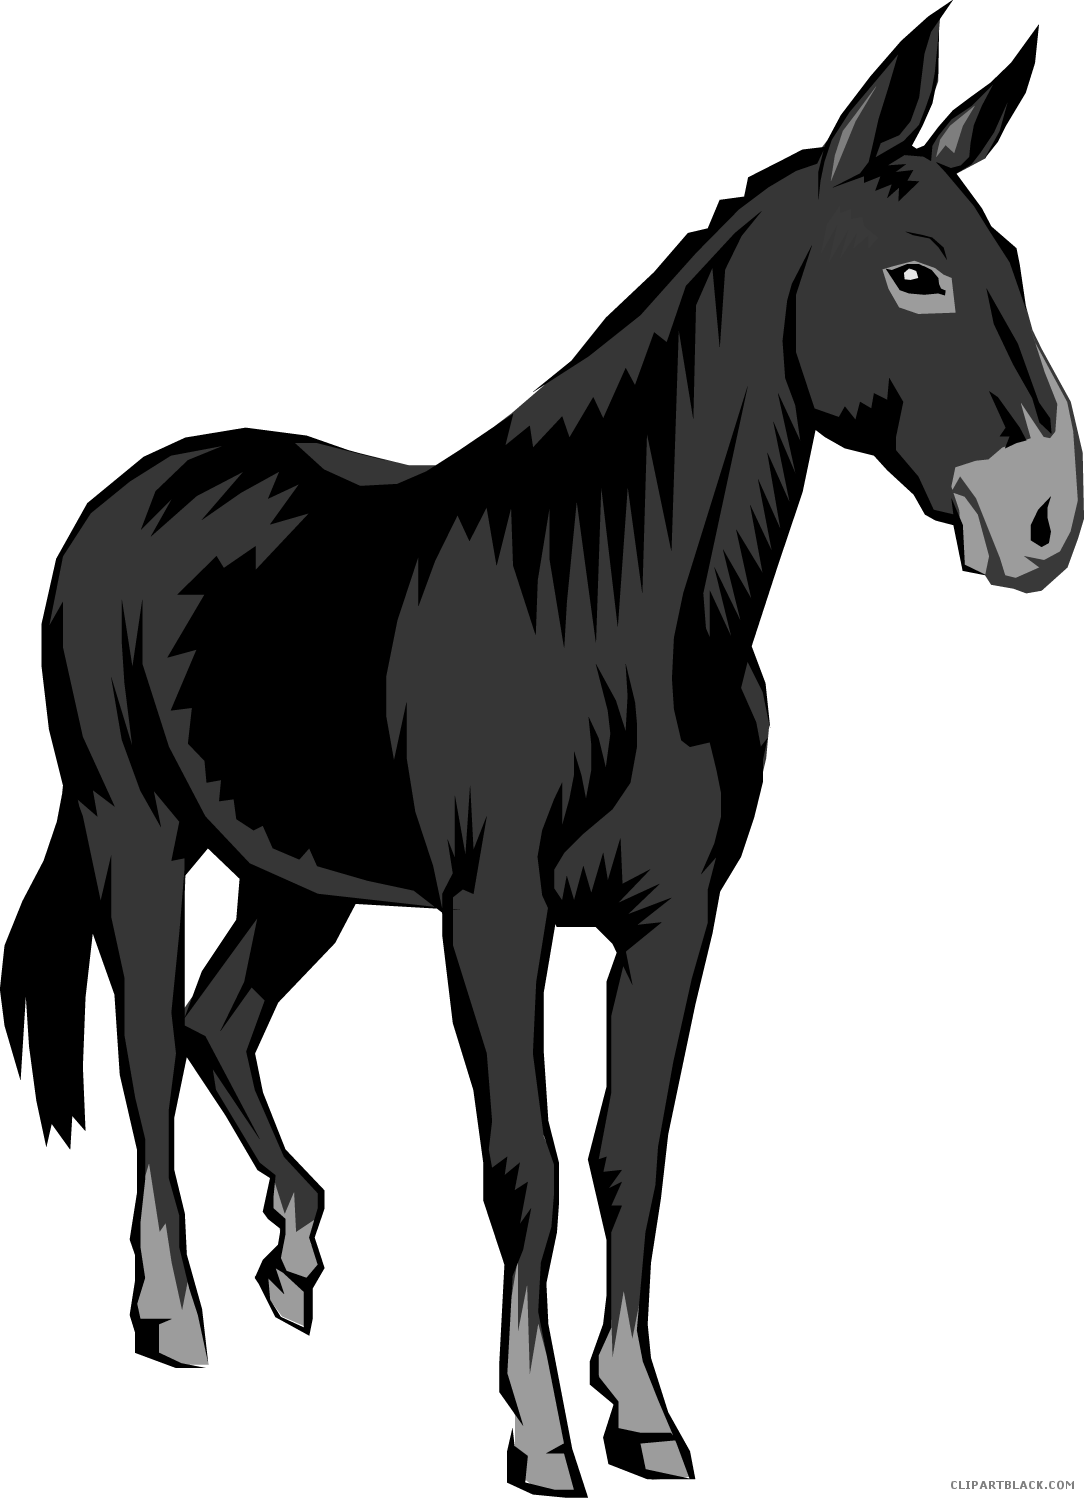 Mule clipart. Clipartblack com animal free